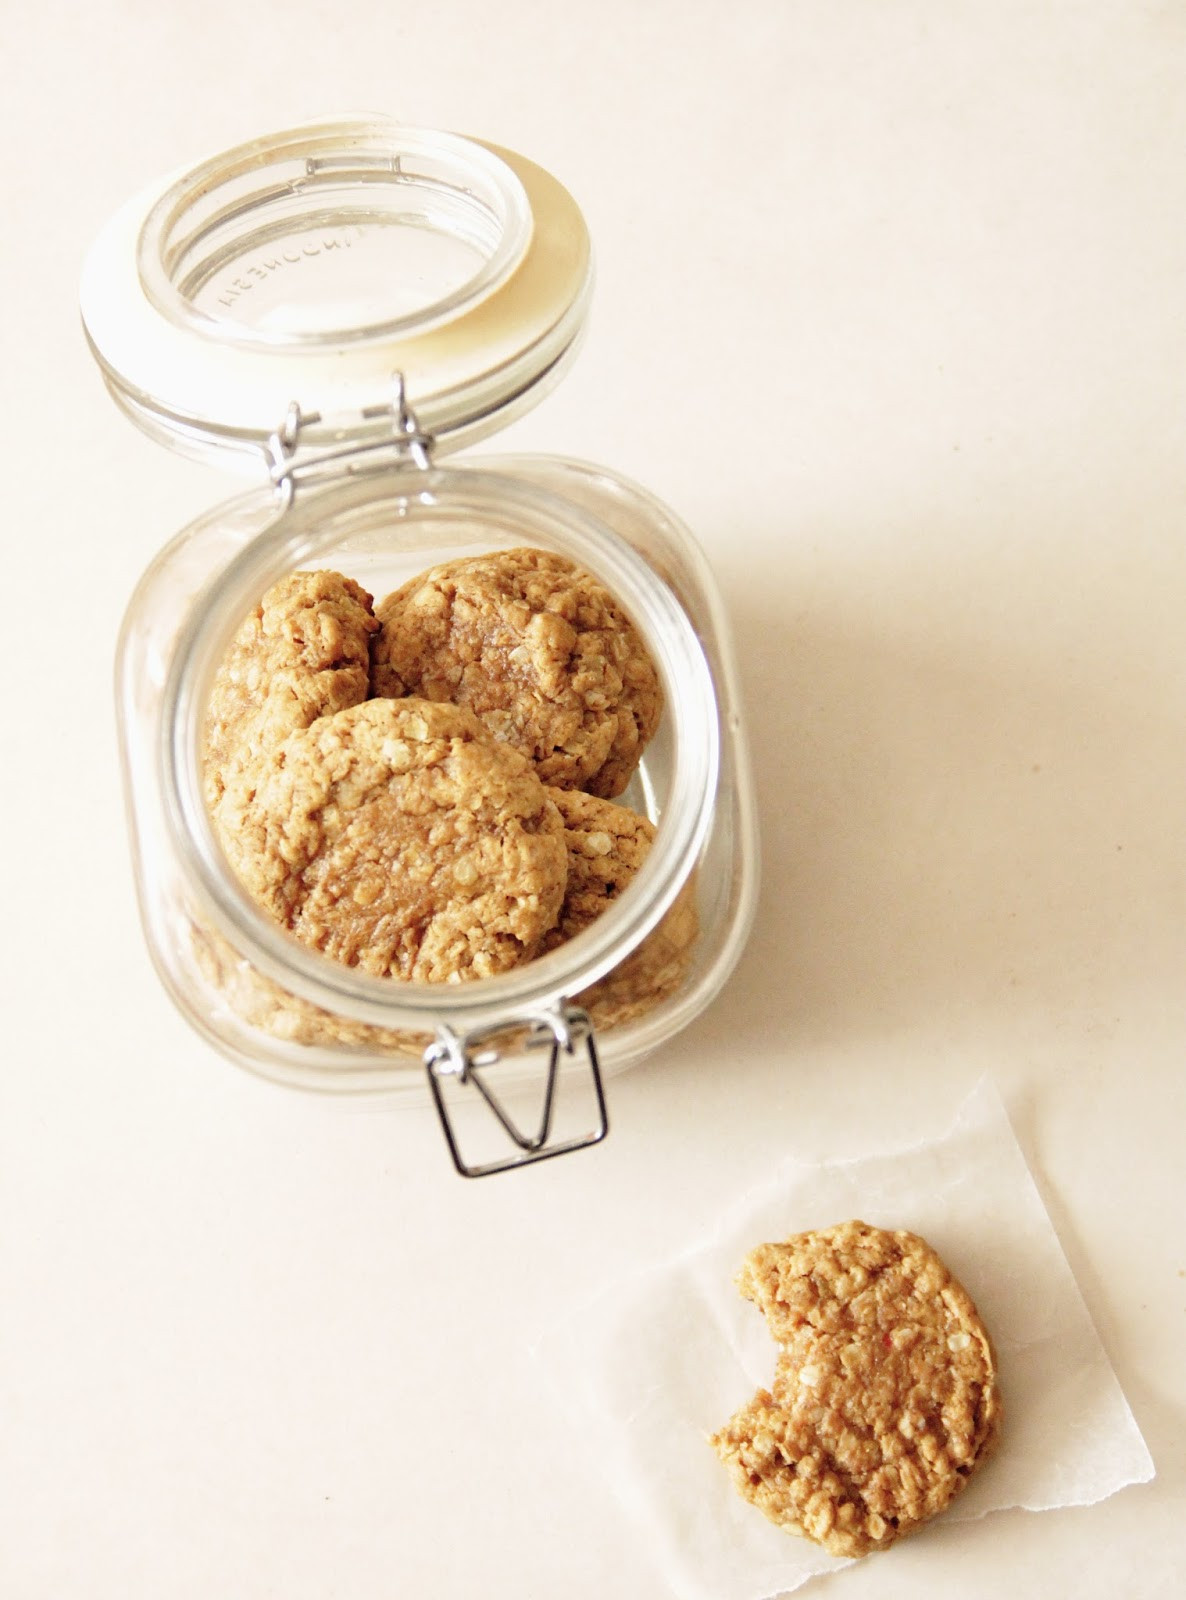 Chewy Peanut Butter Oatmeal Cookies  My Happy Place chewy peanut butter oatmeal cookies